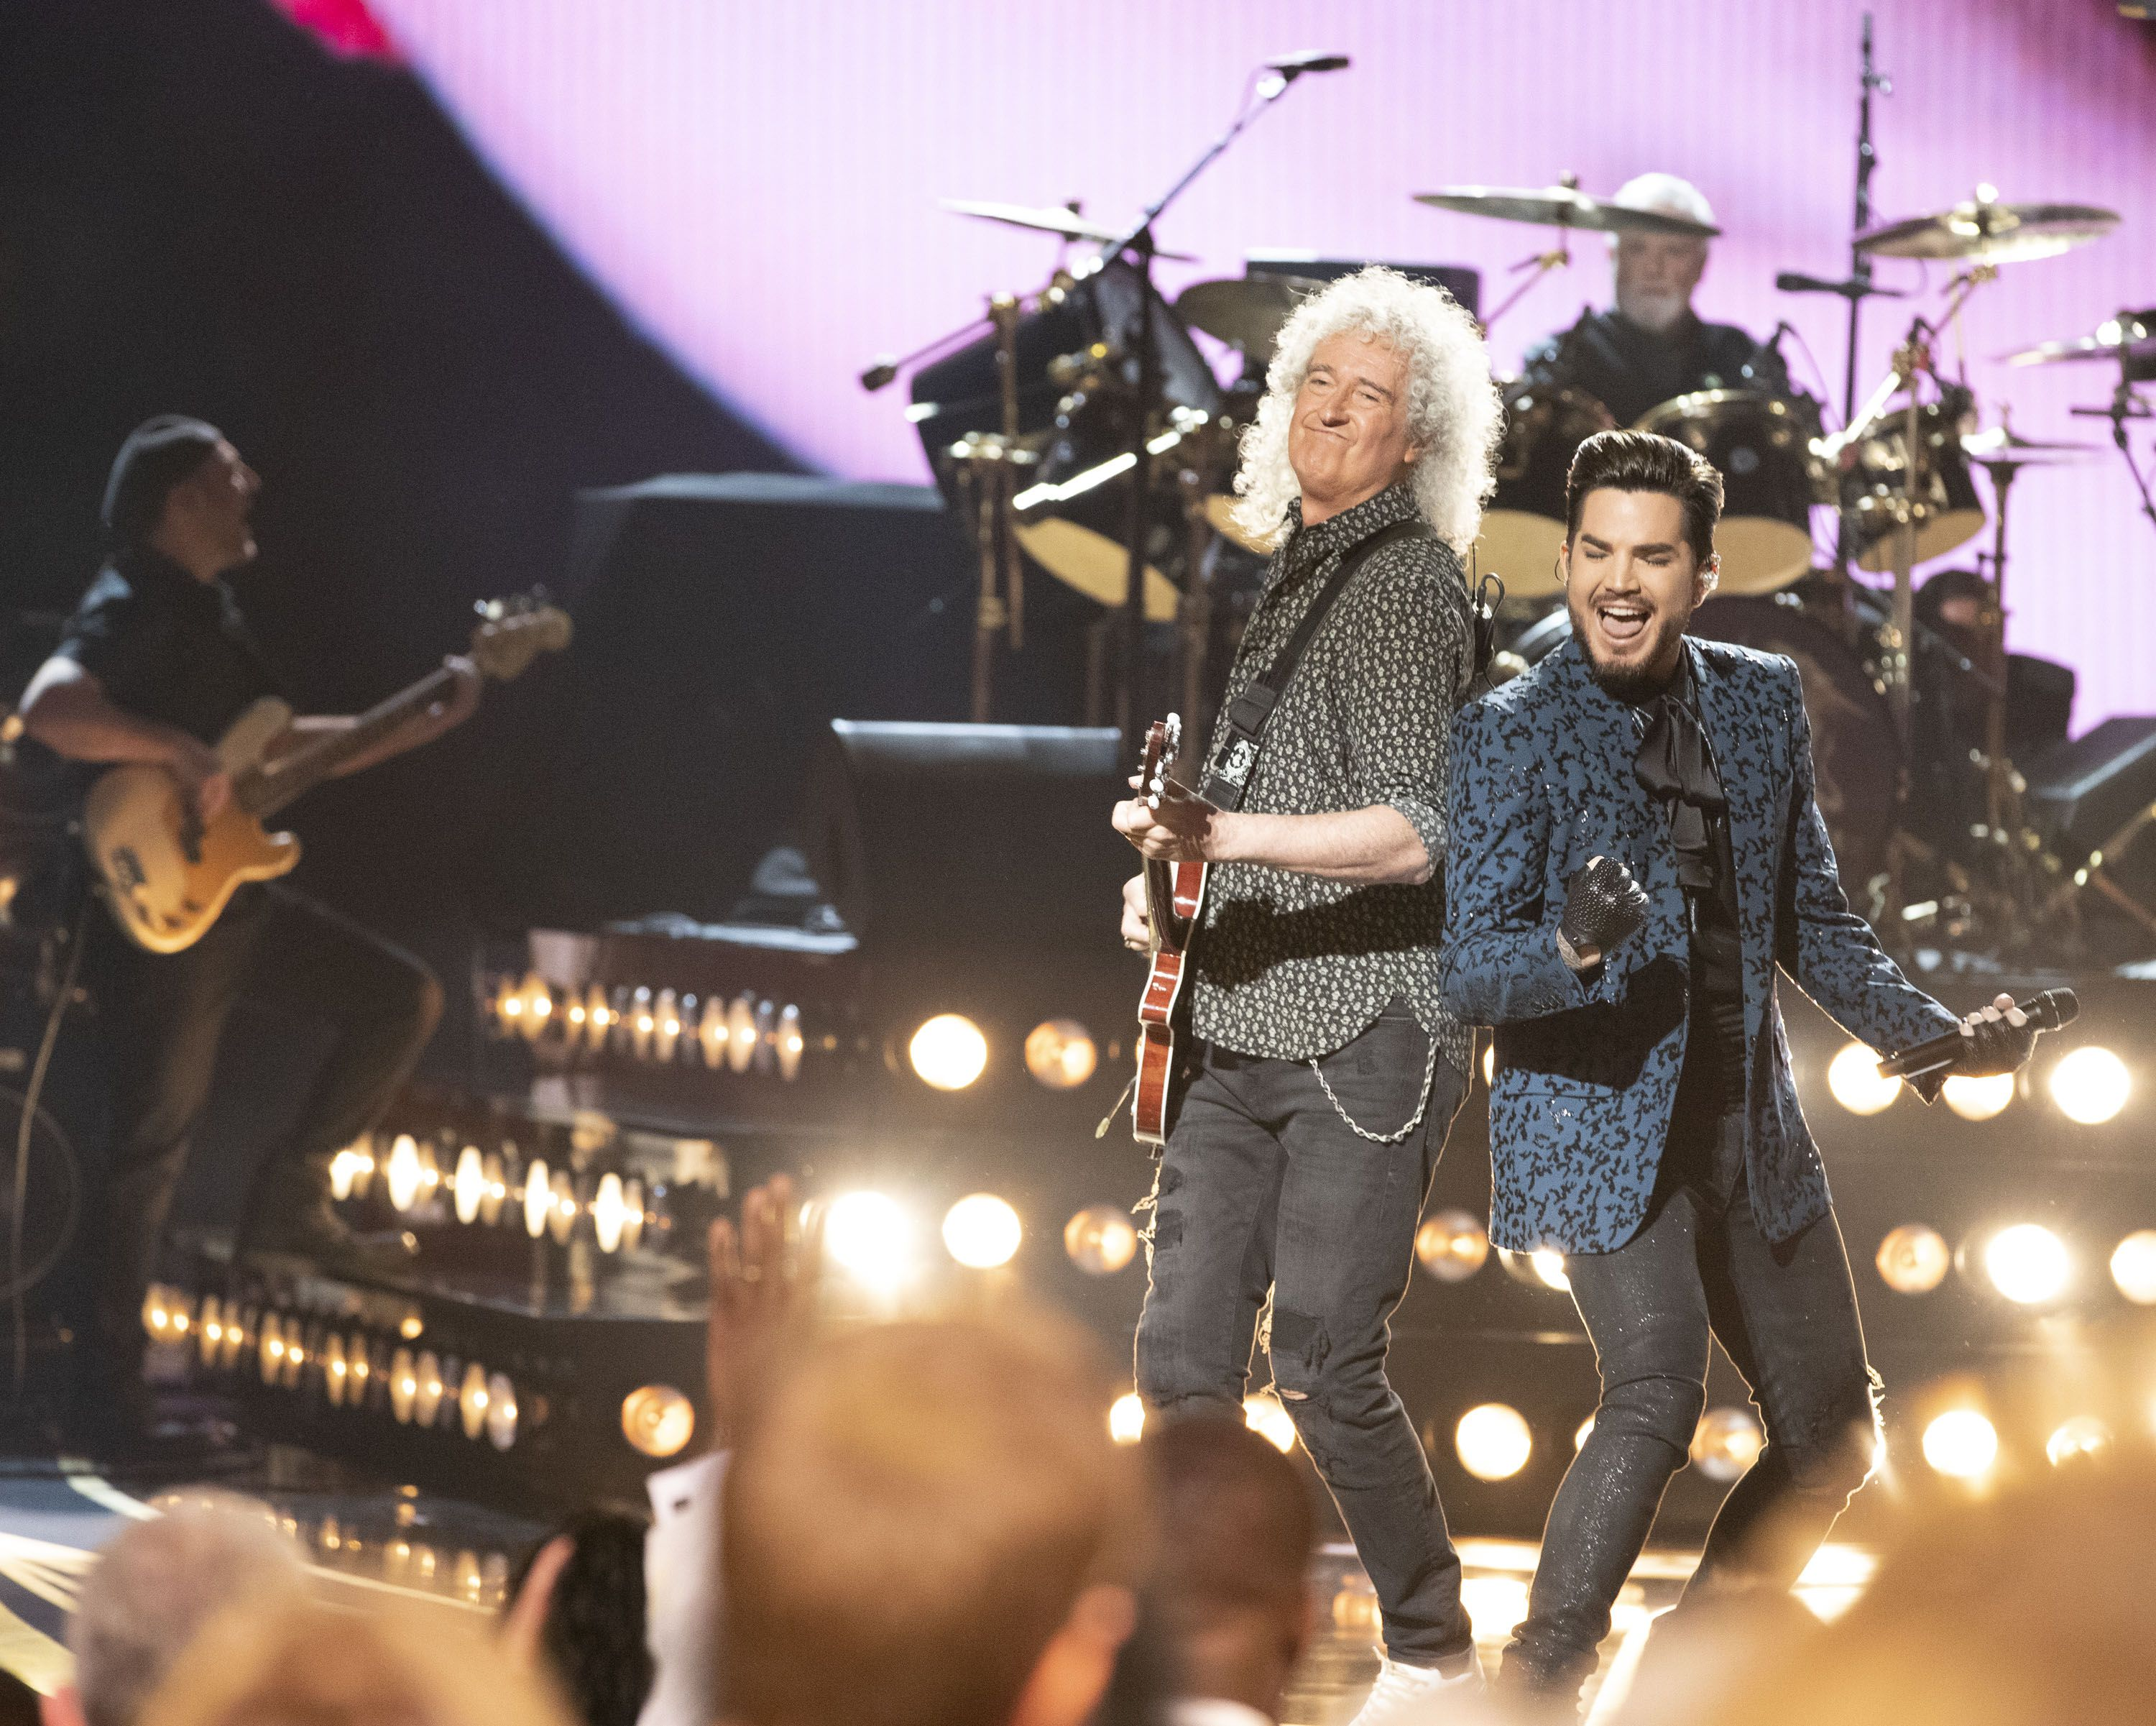 Queen + Adam Lambert at the 2019 Academy Awards